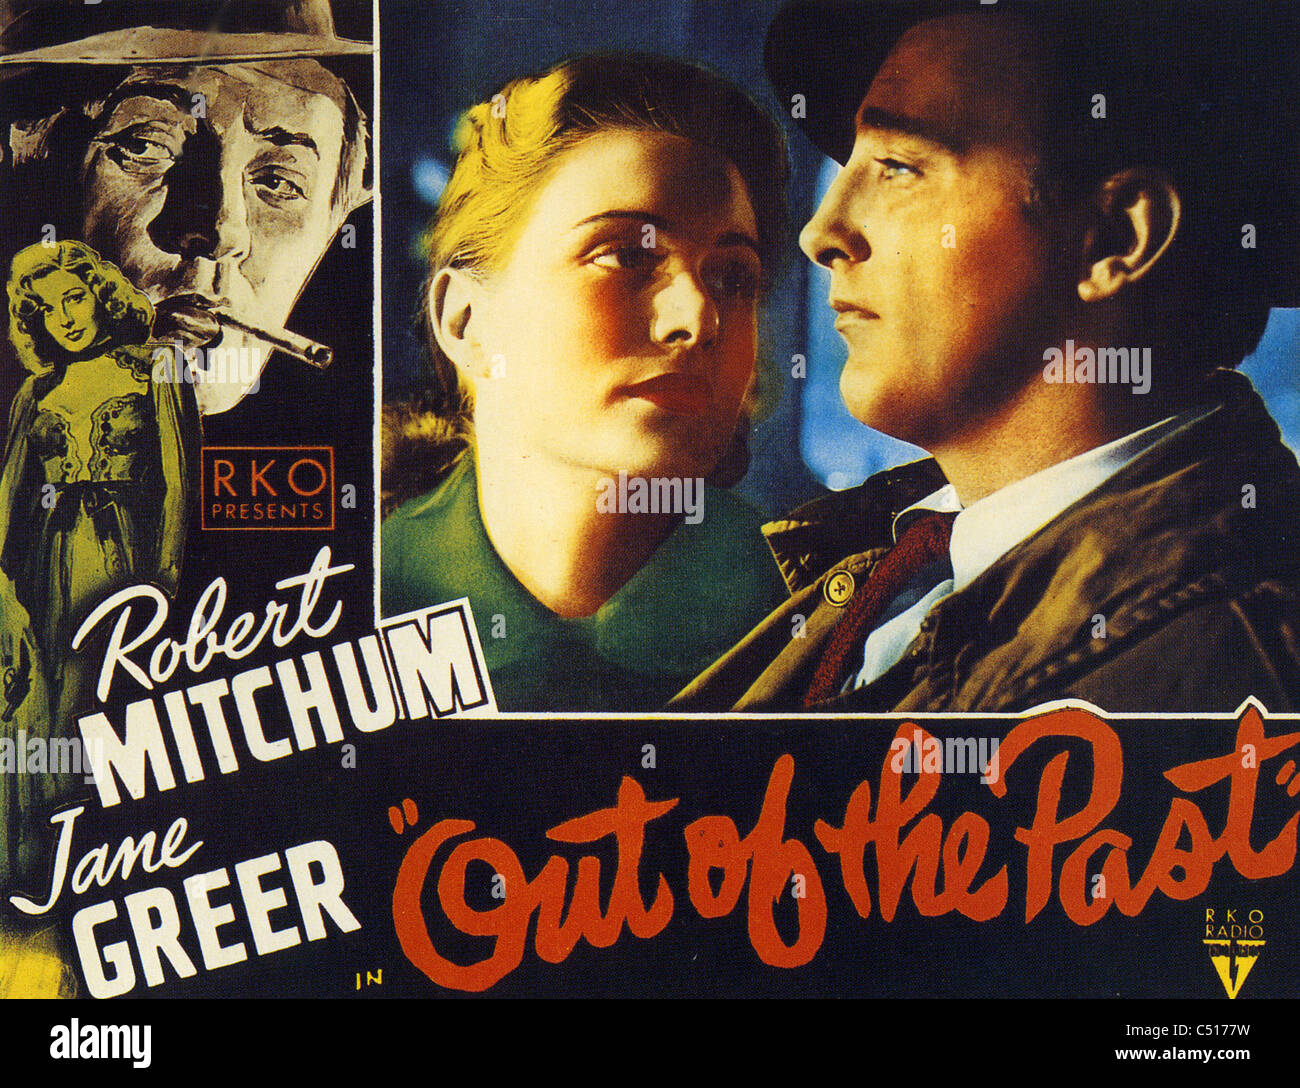 OUT OF THE PAST 1947 RKO film with Robert Mitchum and Jane Greer - Stock Image